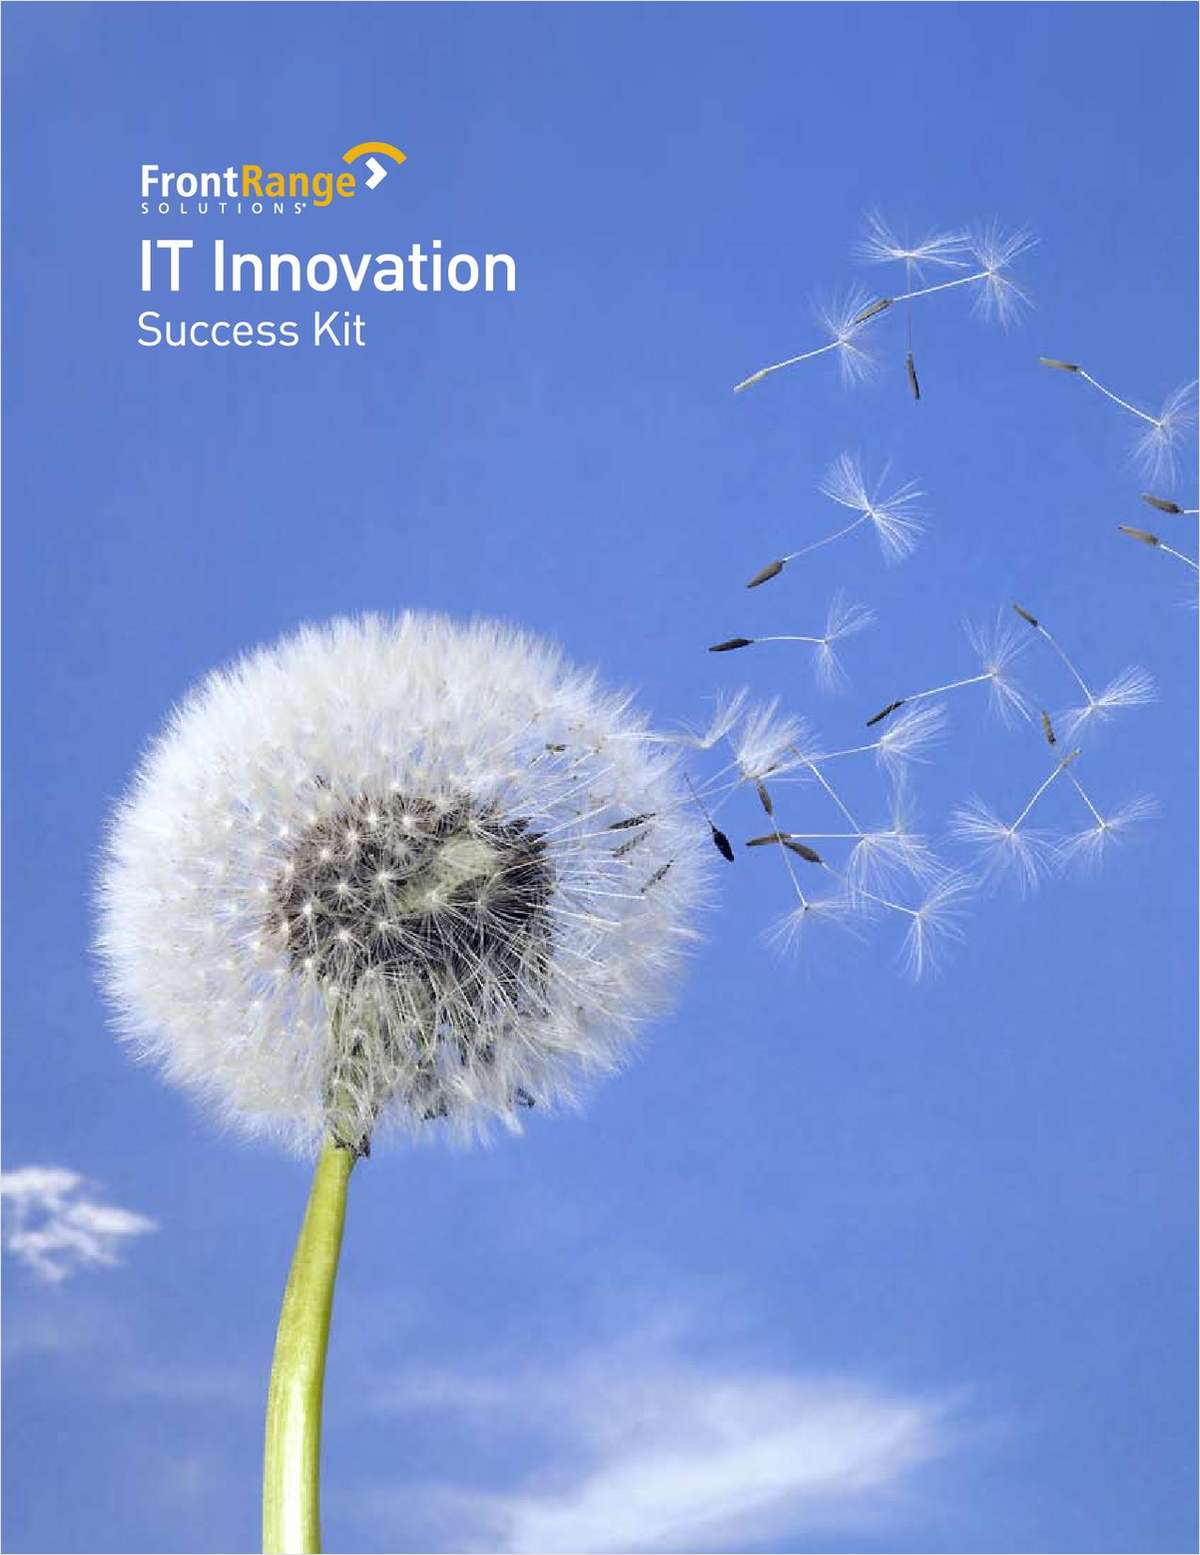 IT Innovation Success Kit for IT DecisionMakers